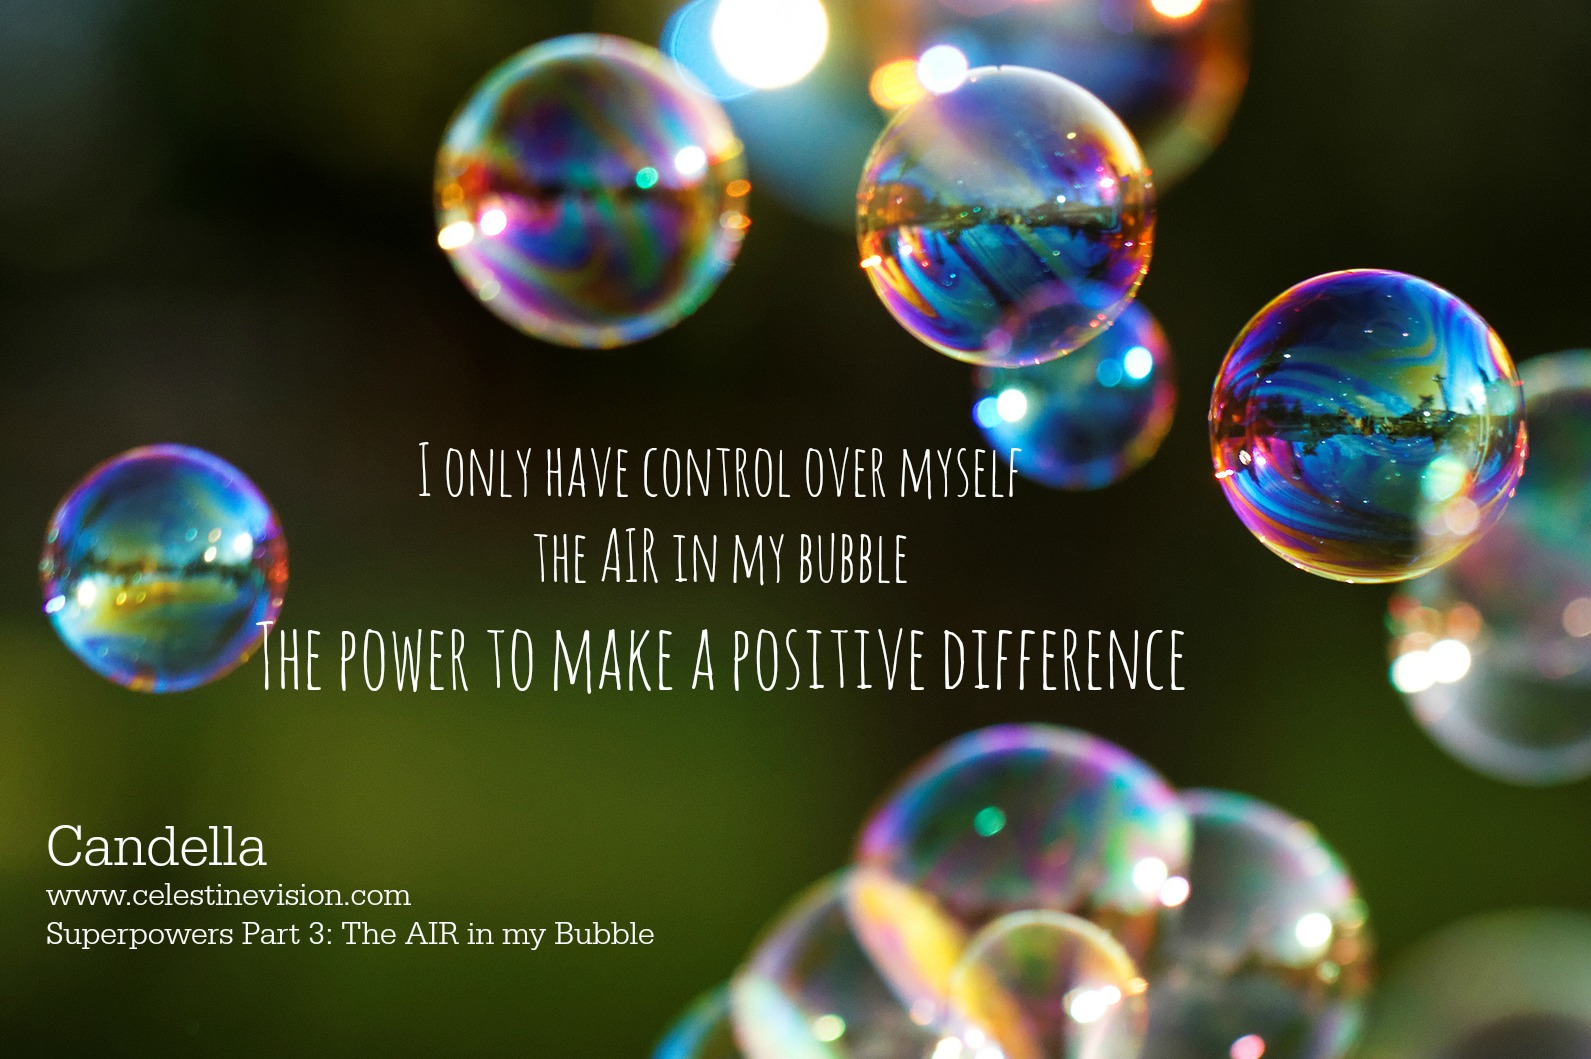 Superpowers Part 3: The AIR in my Bubble